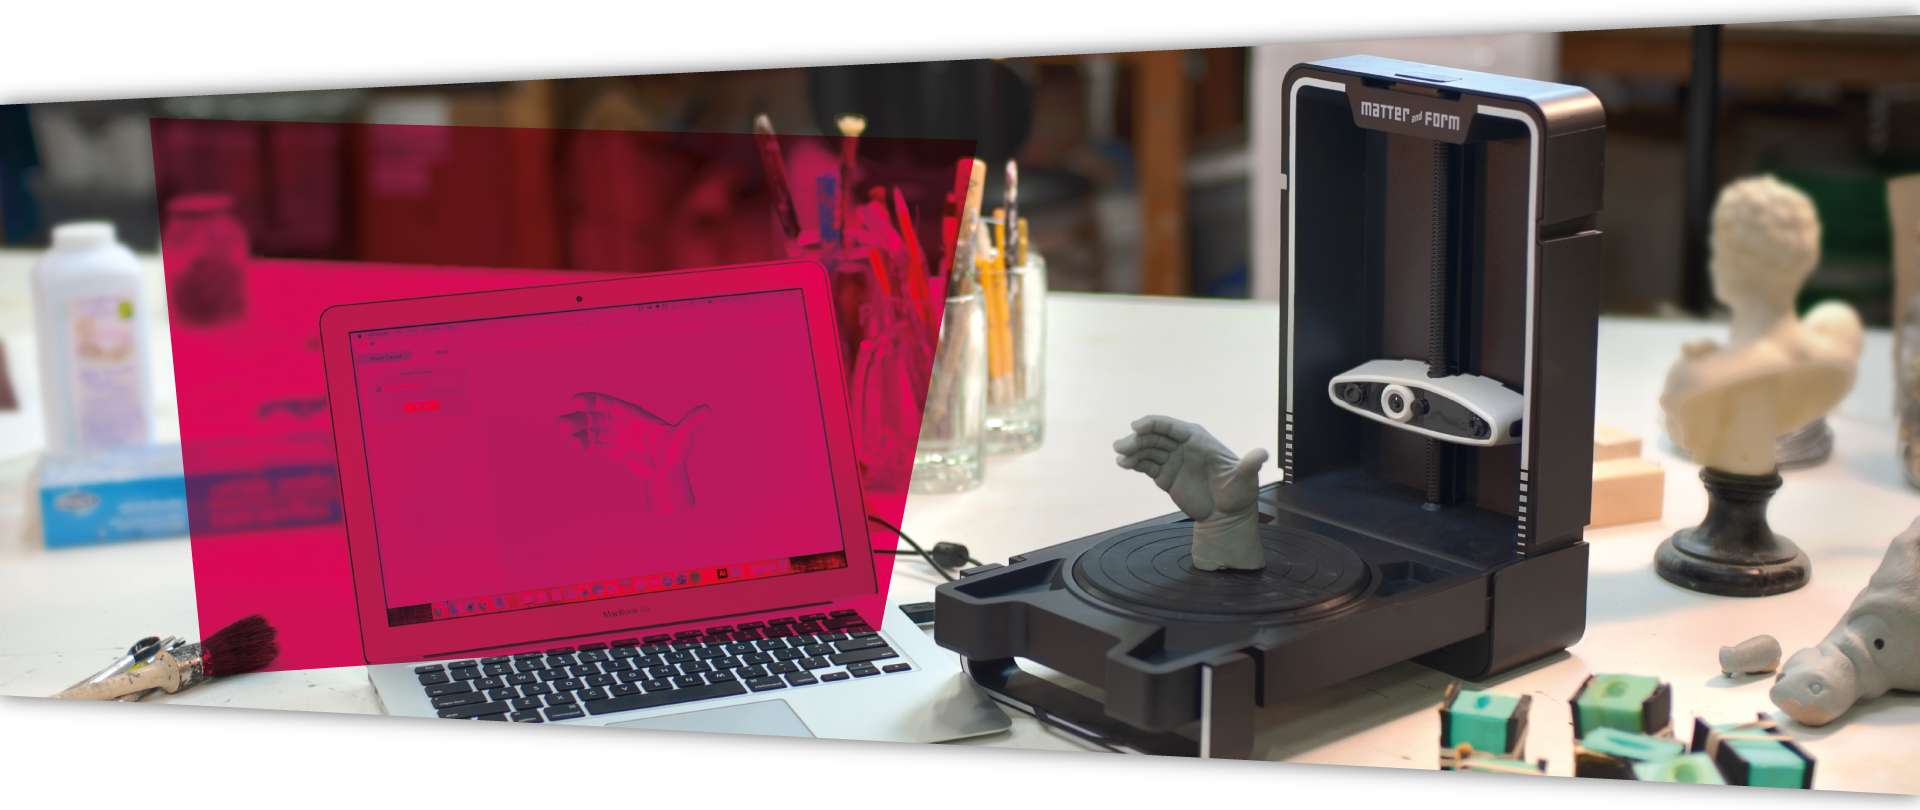 <h2>3D Printing<br />and scanning</h2><h3>Kickstart your creativity with infinite<br />possibilities of 3D printing and scanning!</h3>